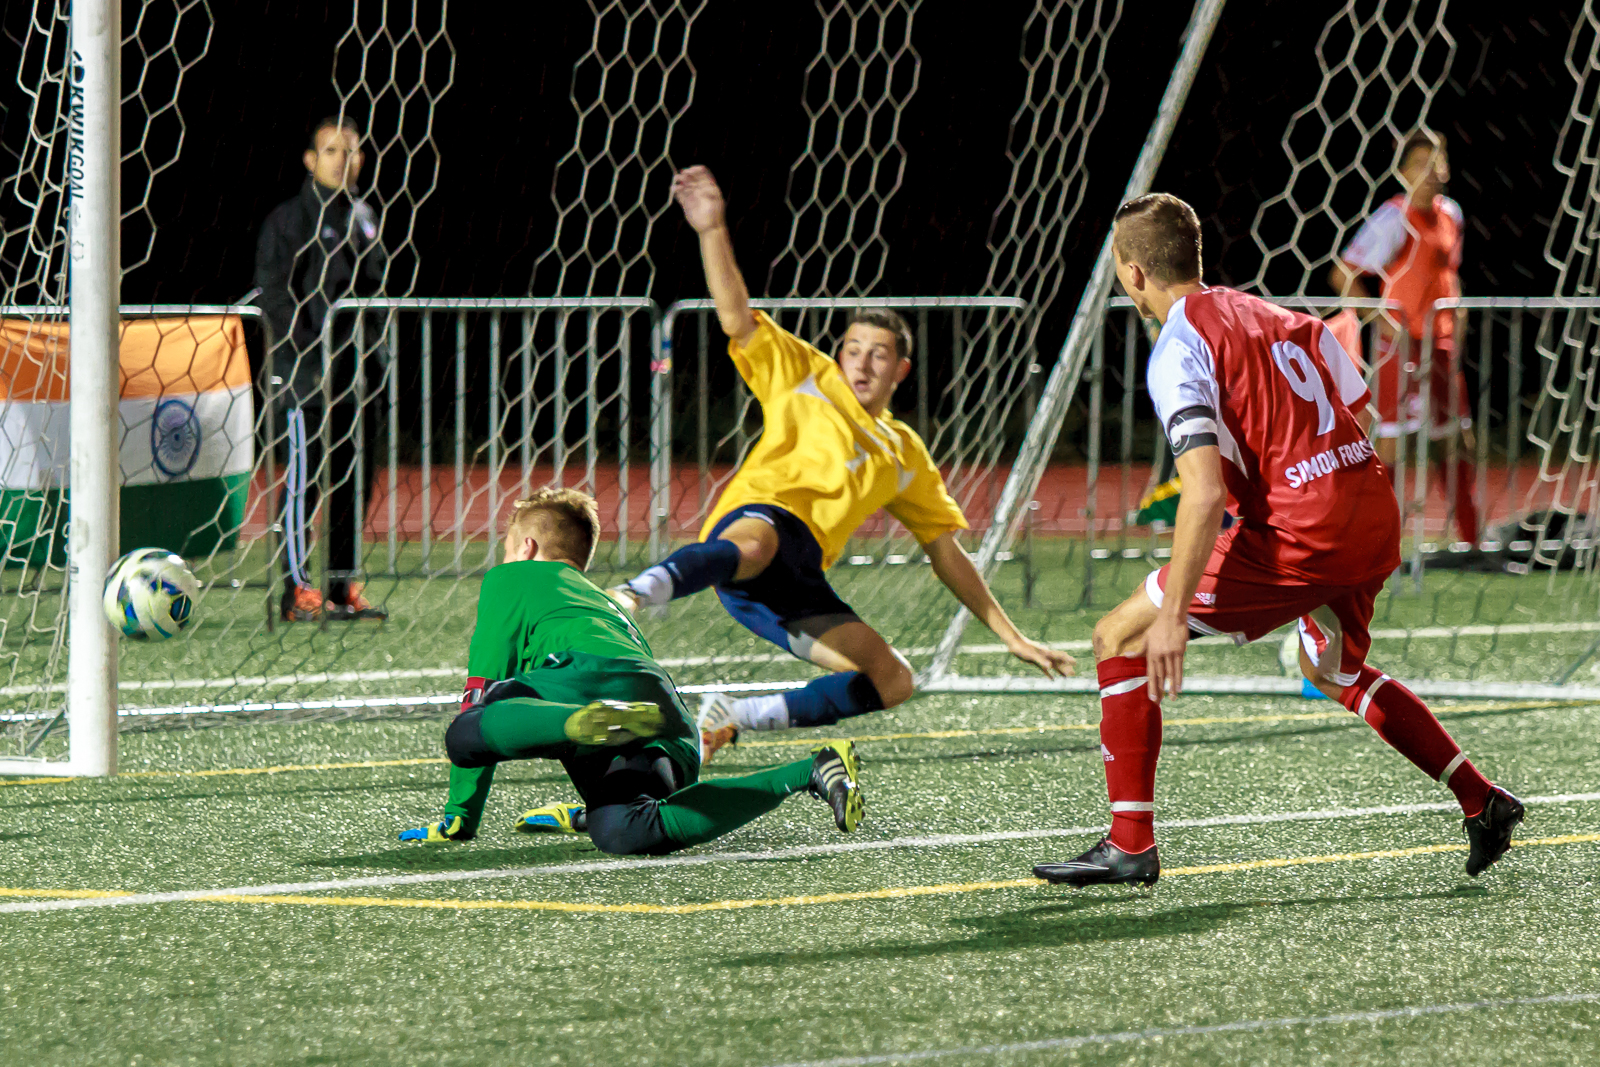 Jovan Blagojevic had the chance to win it in regulation, but Simon Fraser had to settle for a draw after 120 minutes.